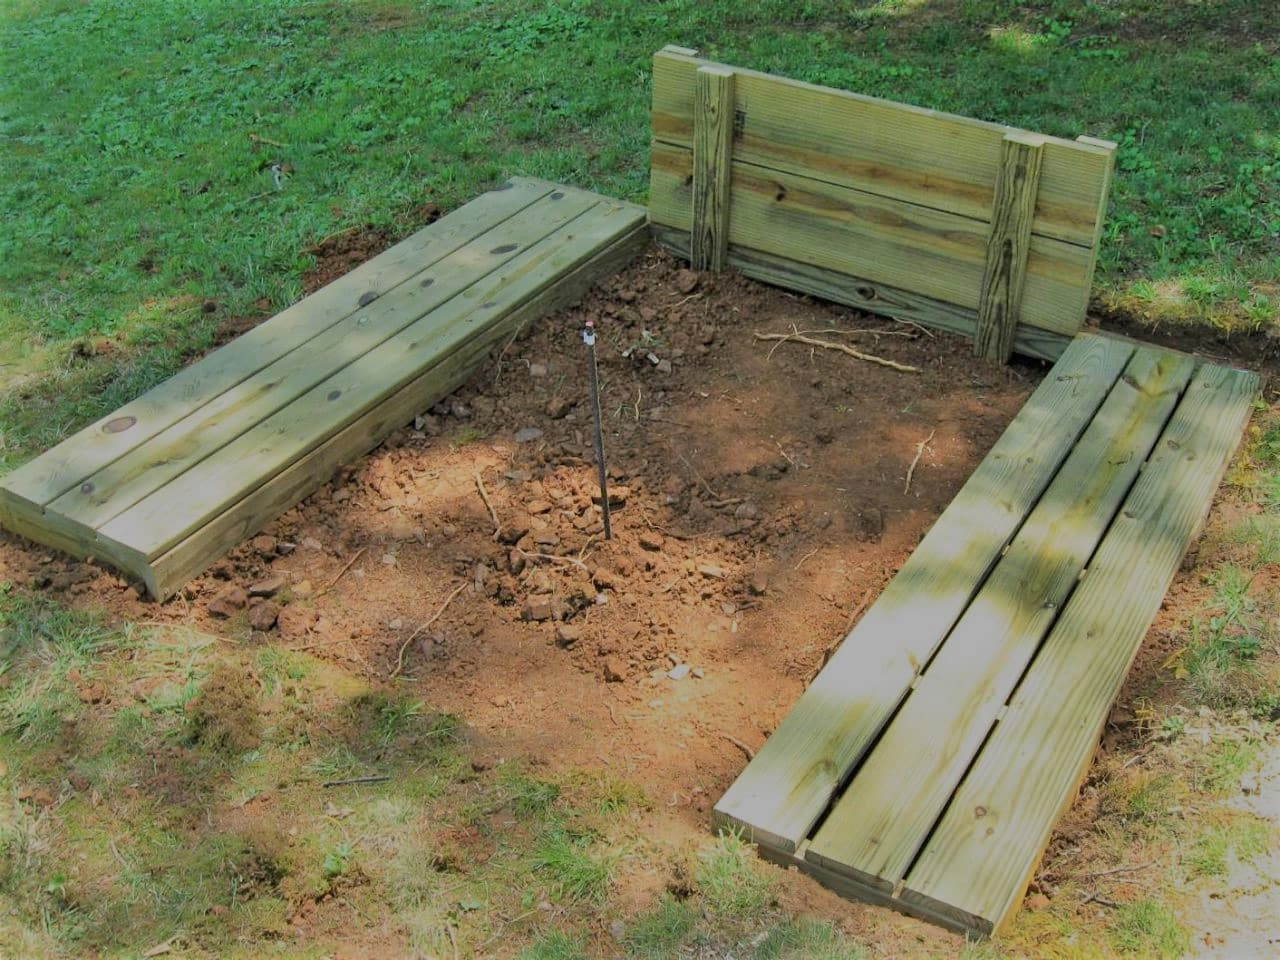 How to Build a Standard Horseshoe Pit